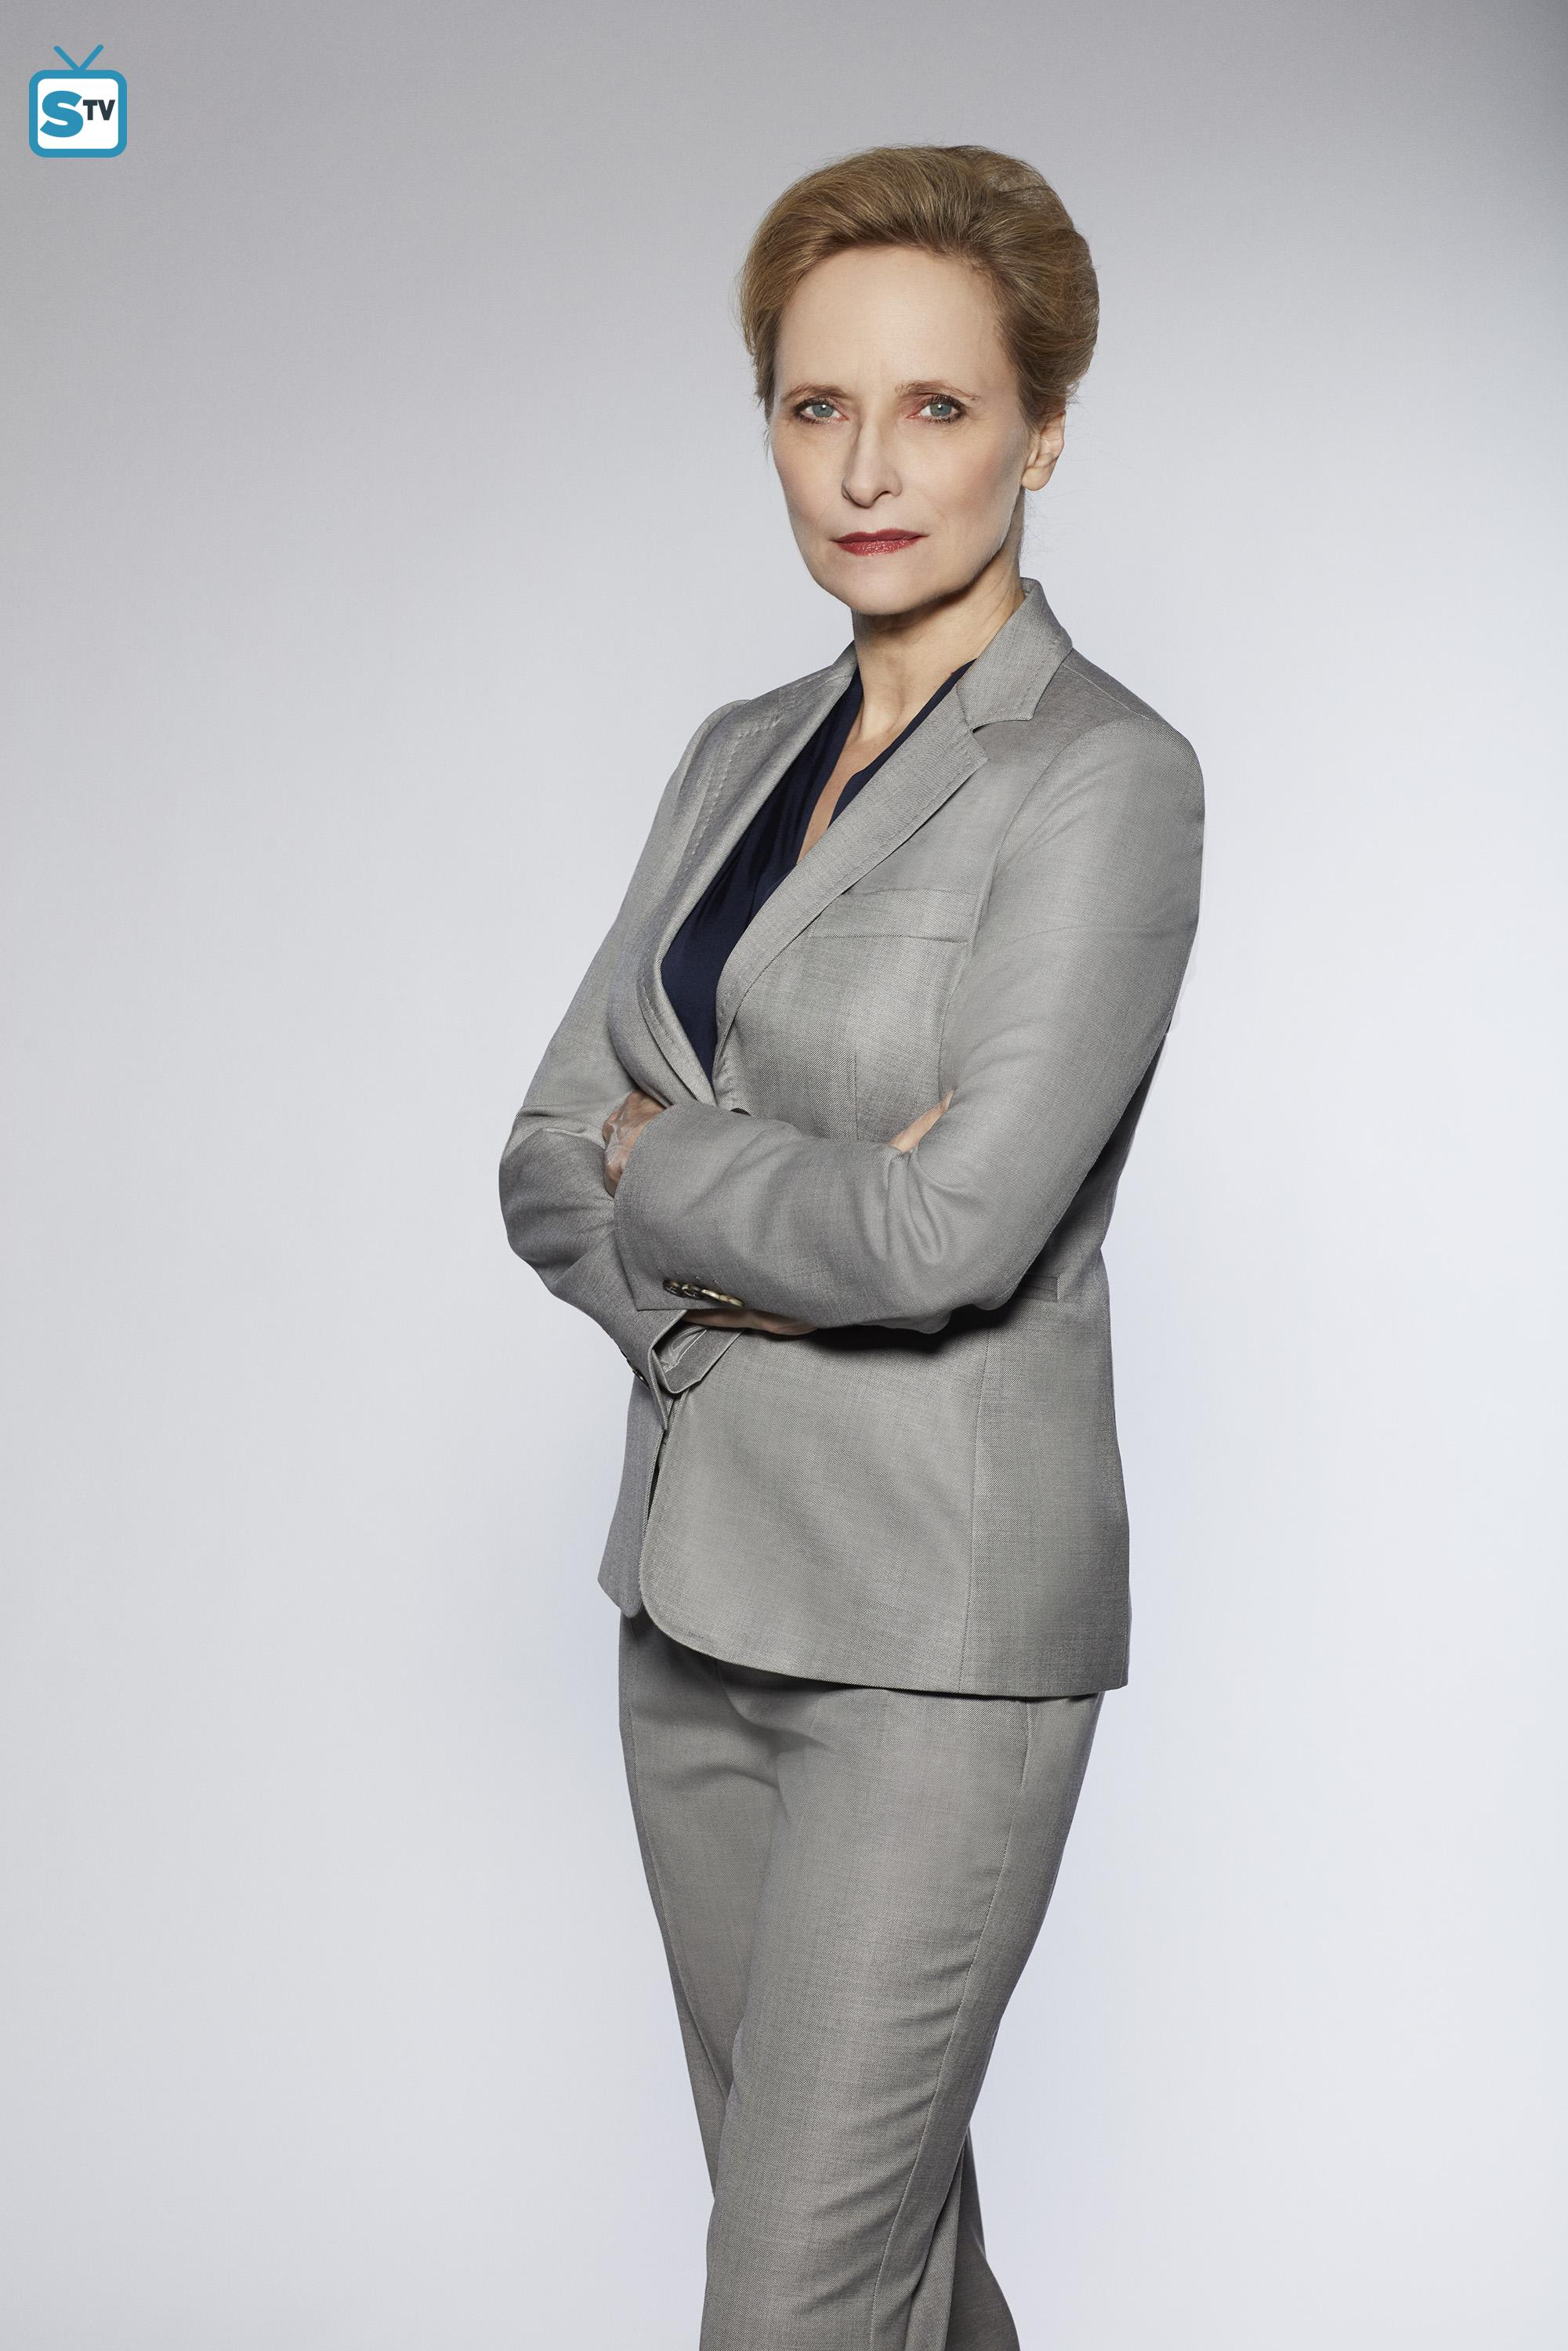 deception (tv series) images laila robins as special agent deakin hd